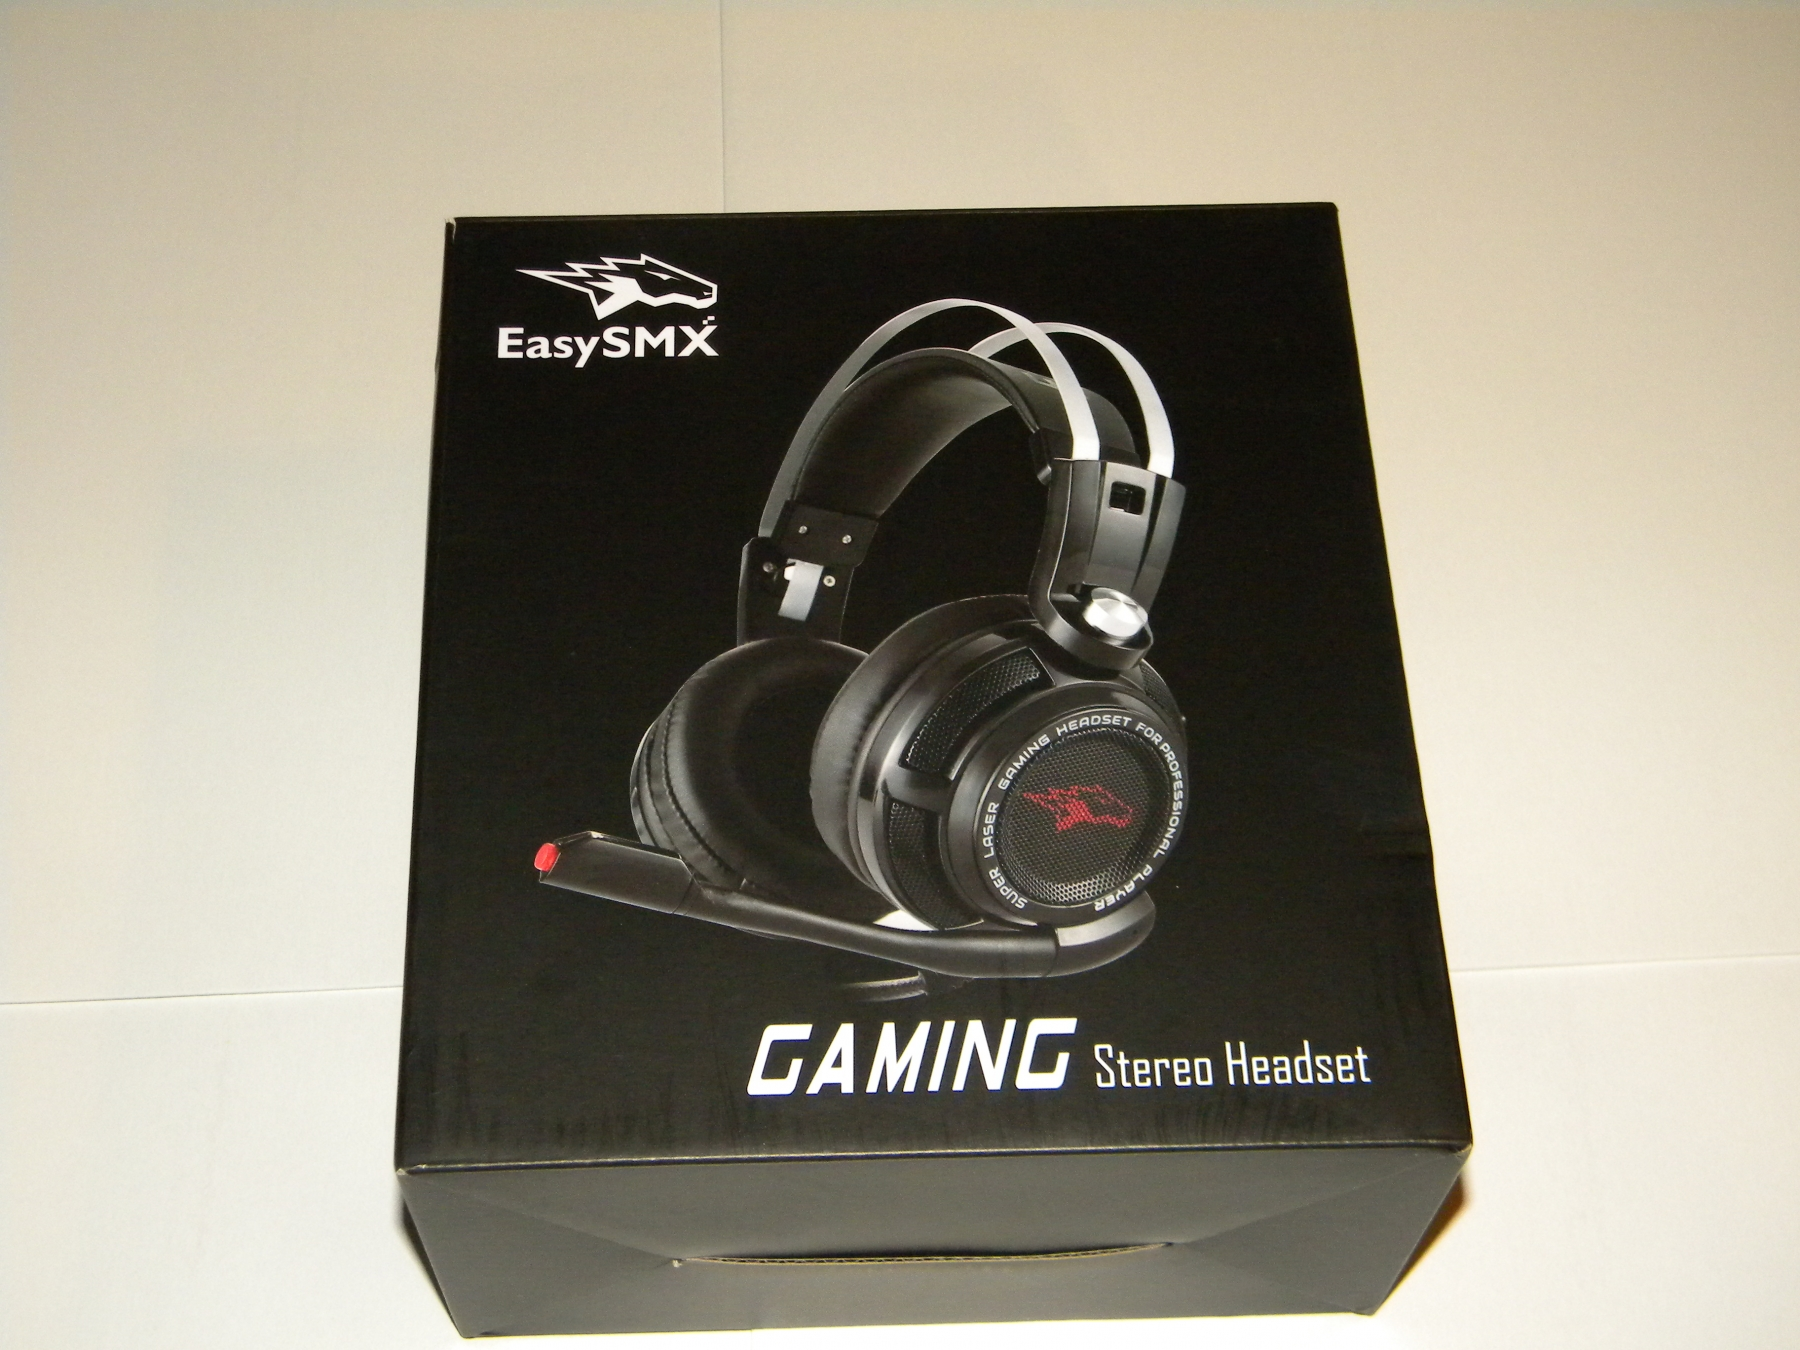 HIGH END HEADSET AT LOW END PRICE WICKED